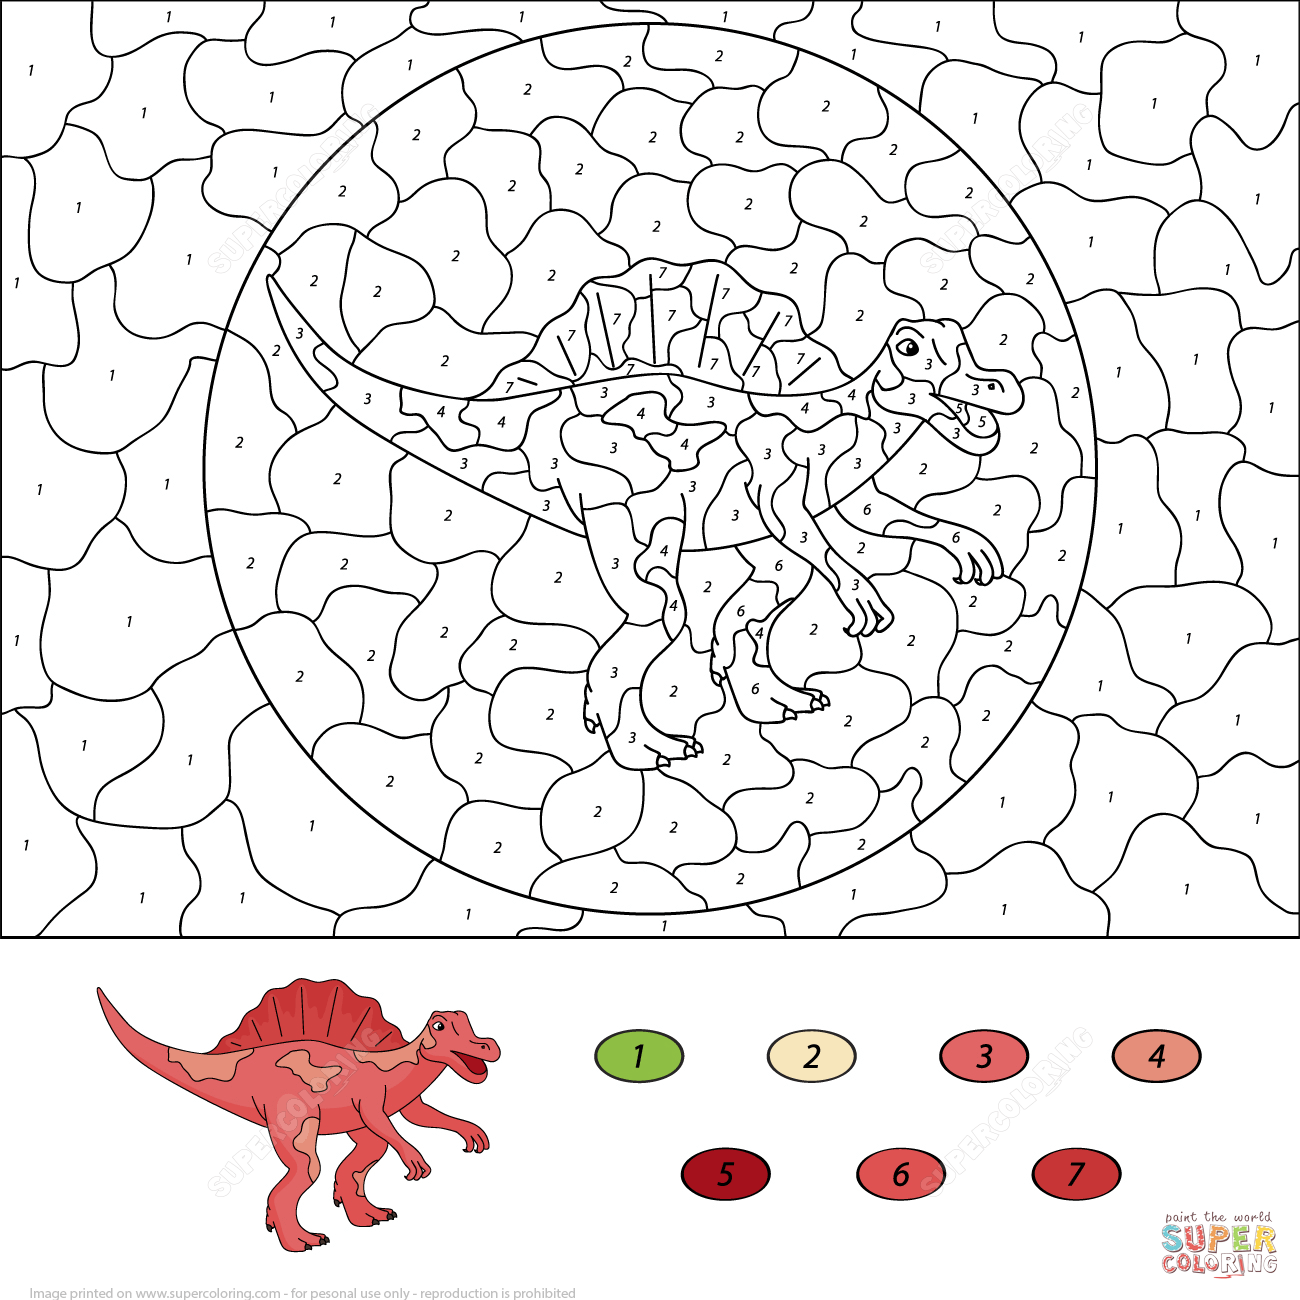 Colour By Number Dinosaur : Dinosaurs color by number coloring pages free printable pictures